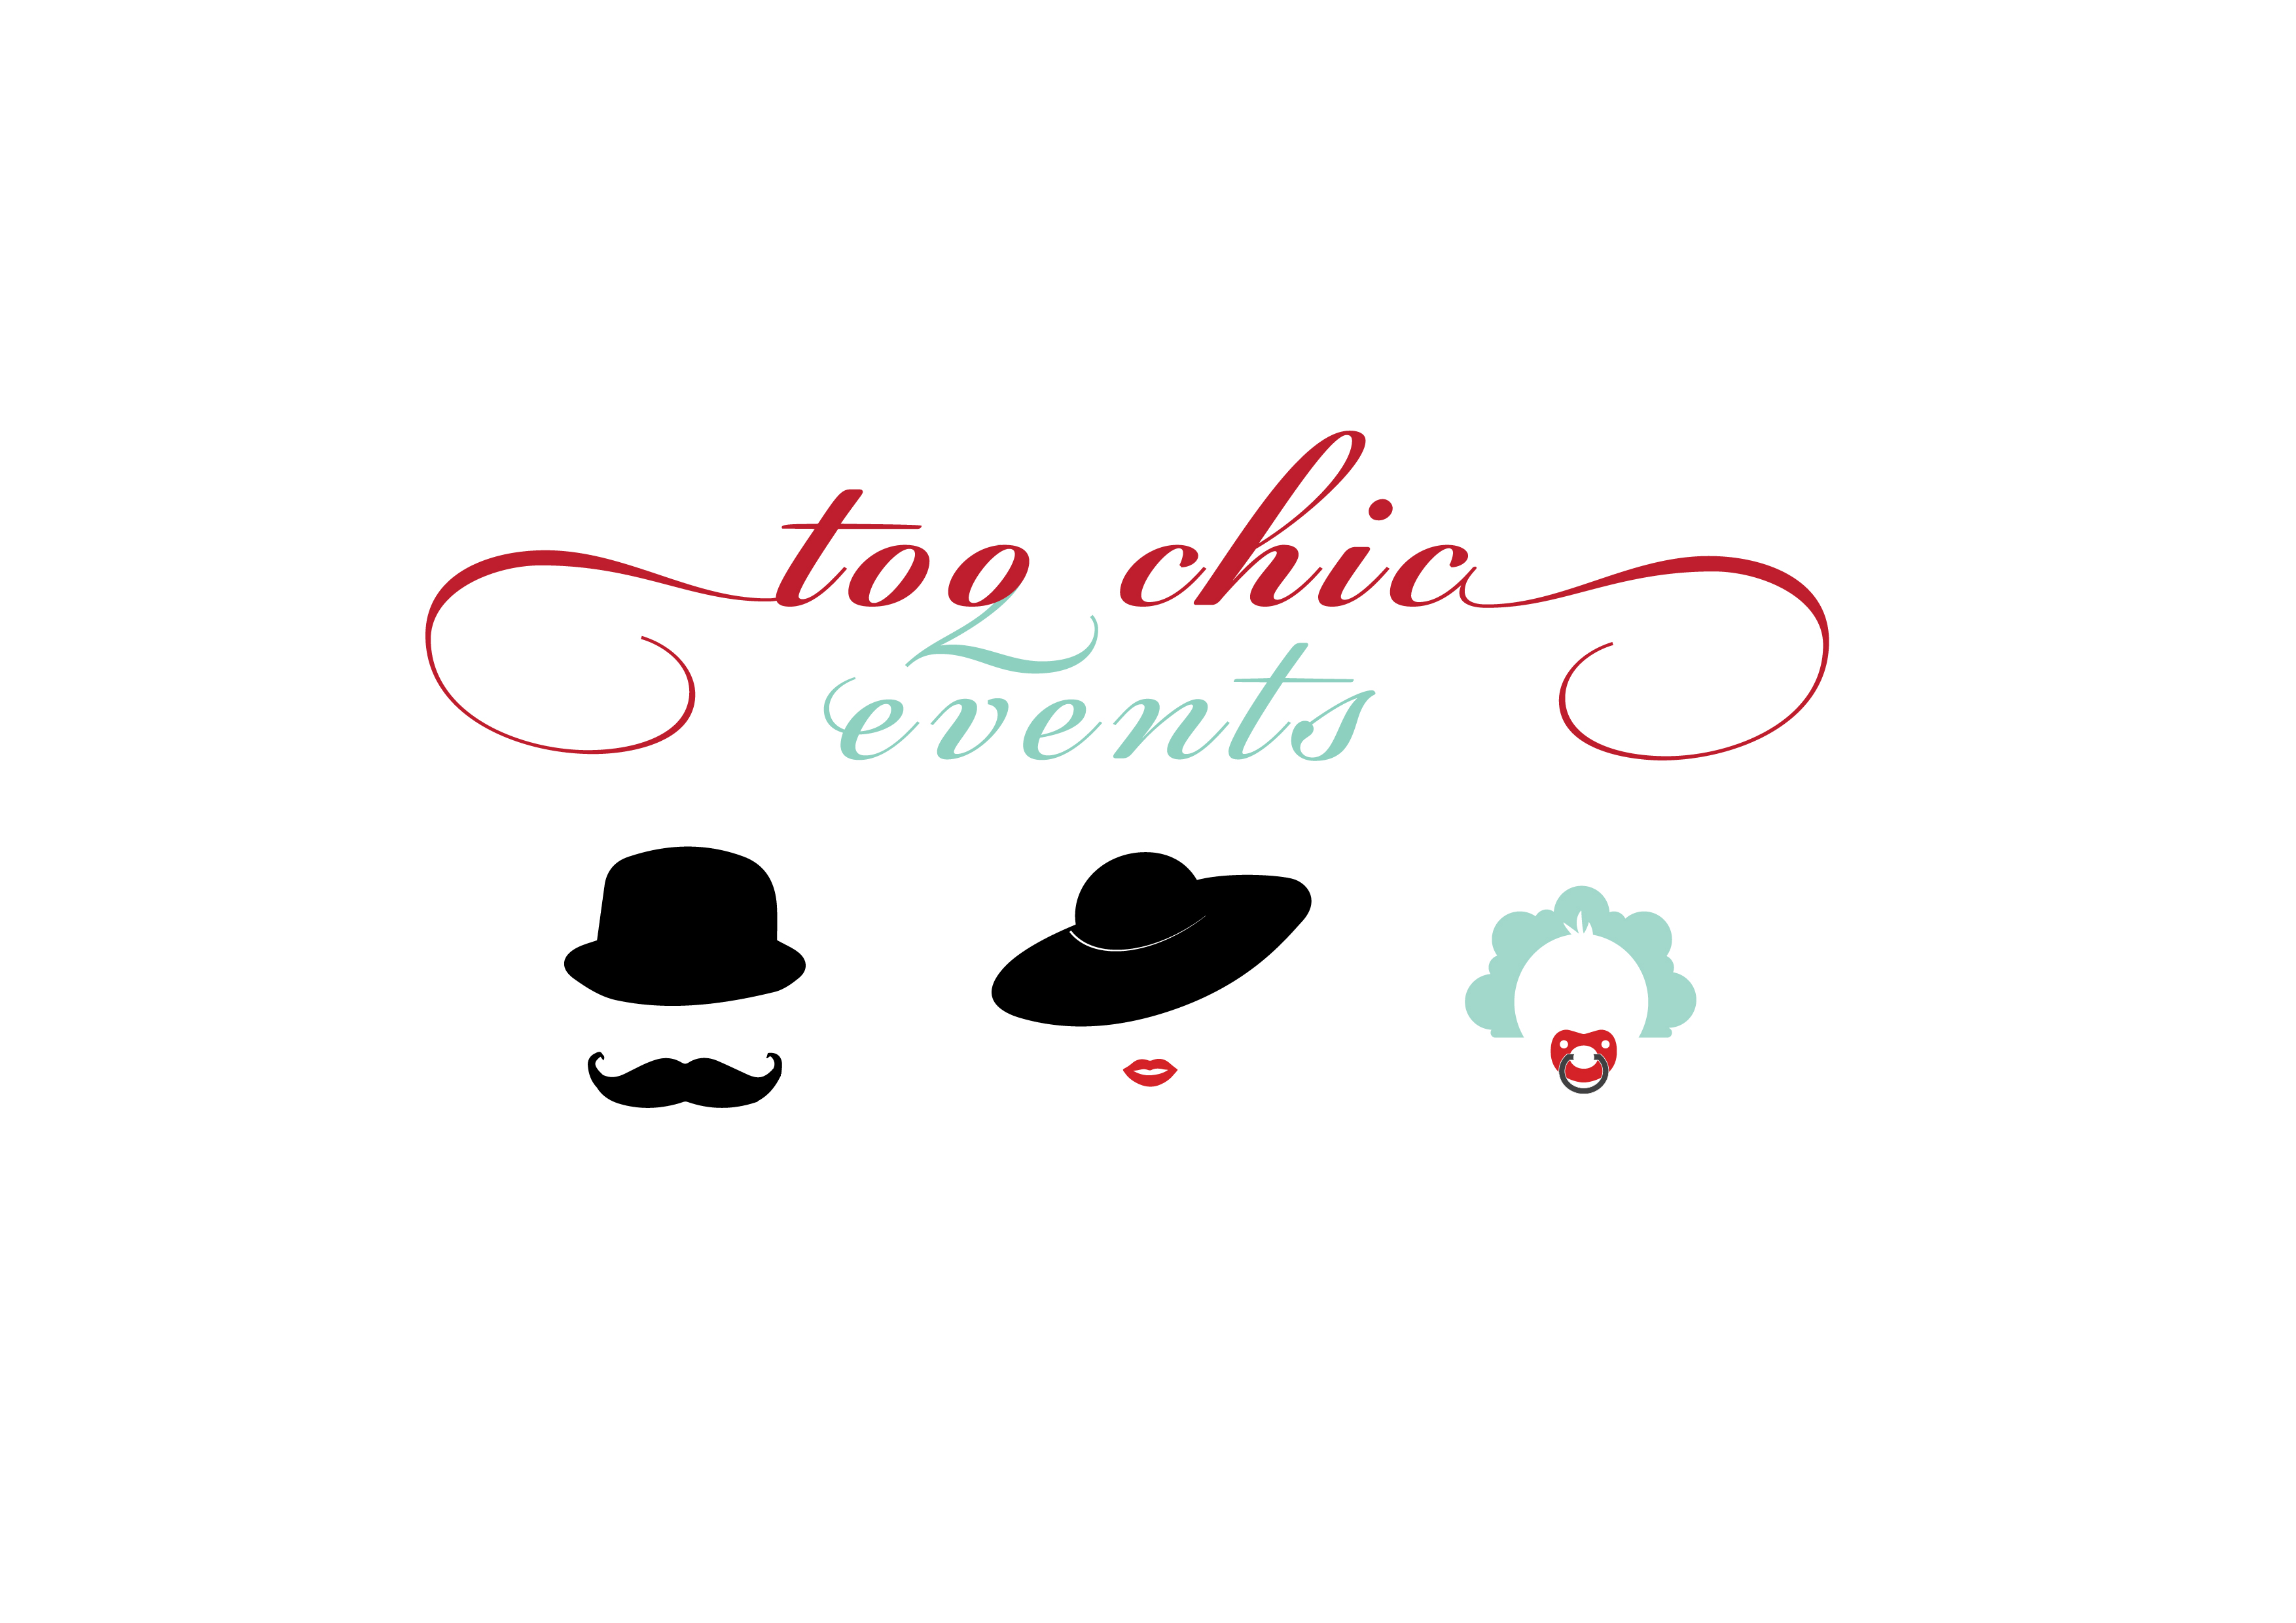 Too chic events - Βάγιανου Δέσποινα, Wedding planners